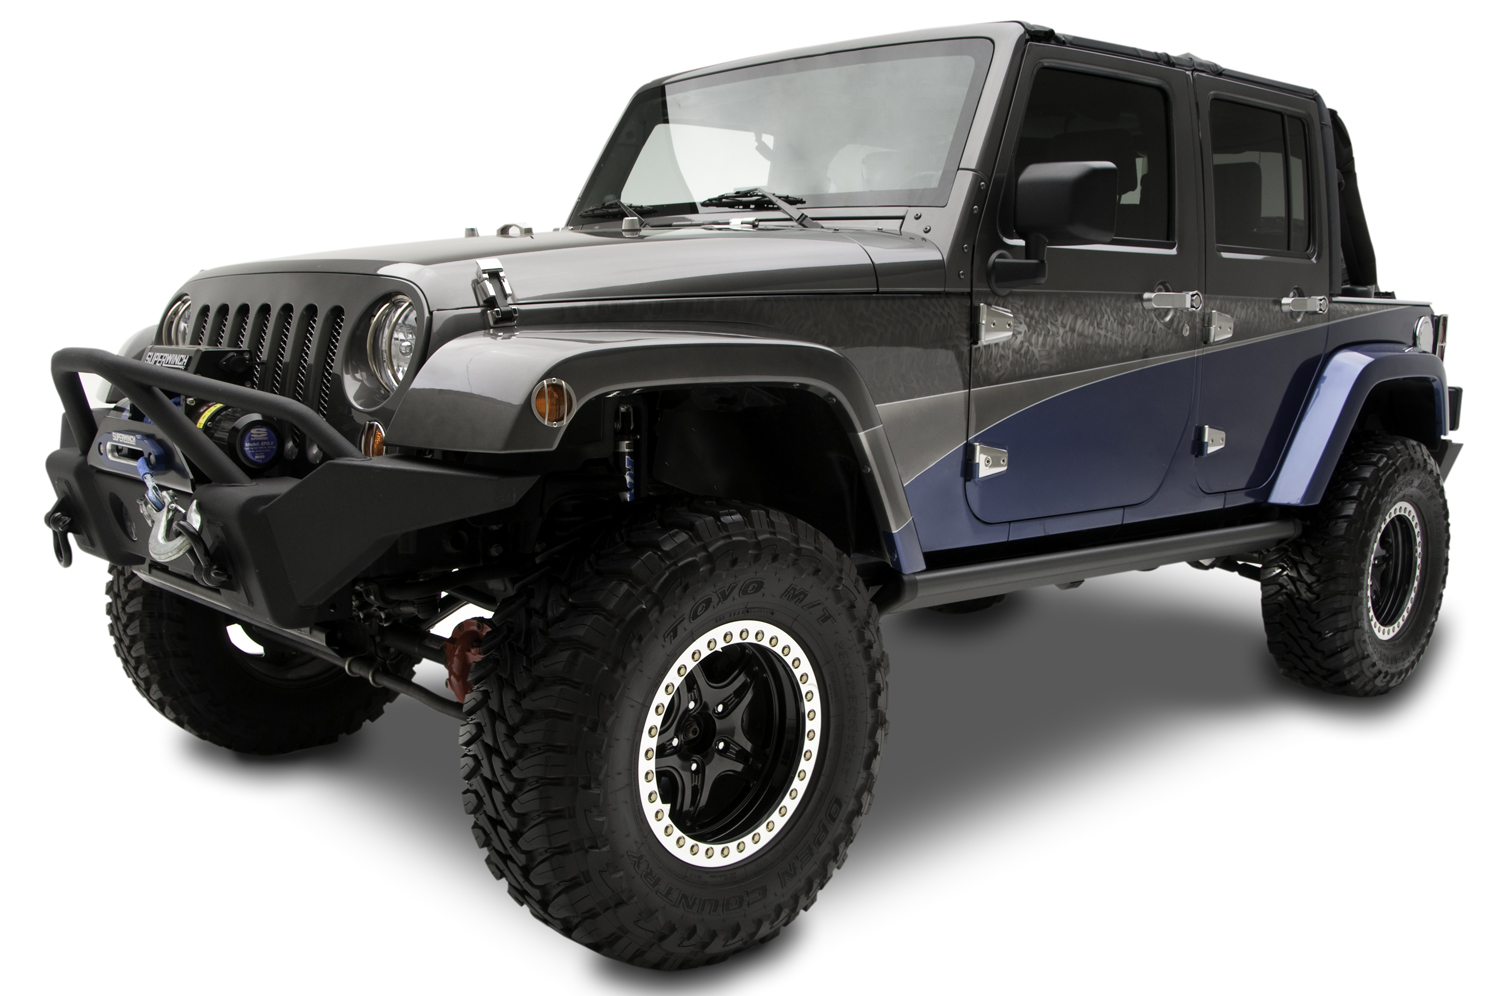 powerstep electric running boardsamp research for jeep - 2007